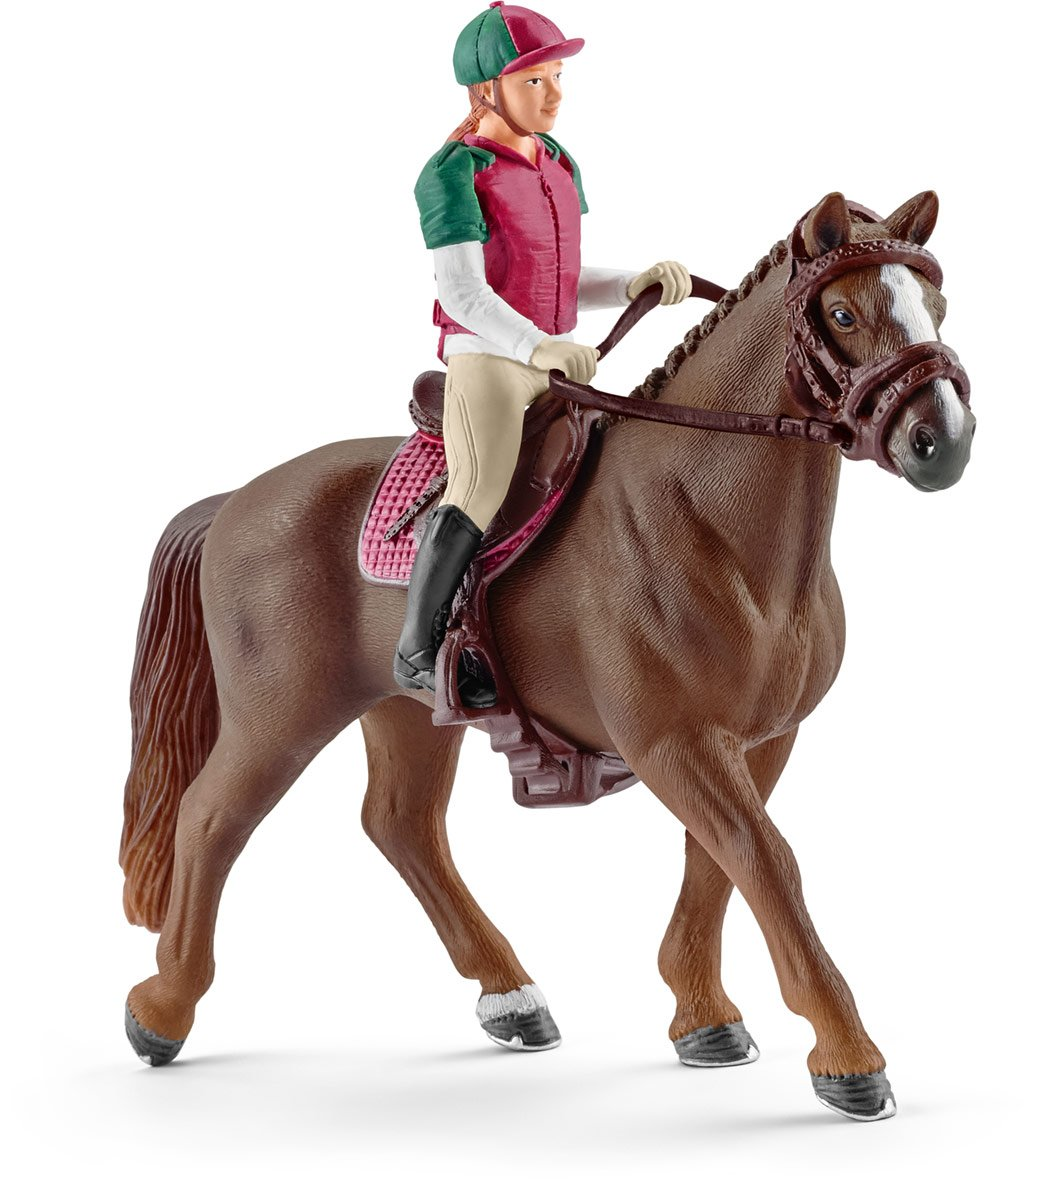 SCHLEICH Horse Club Eventing Rider and Horse Toy Figurine Set for Children Ages 5-12